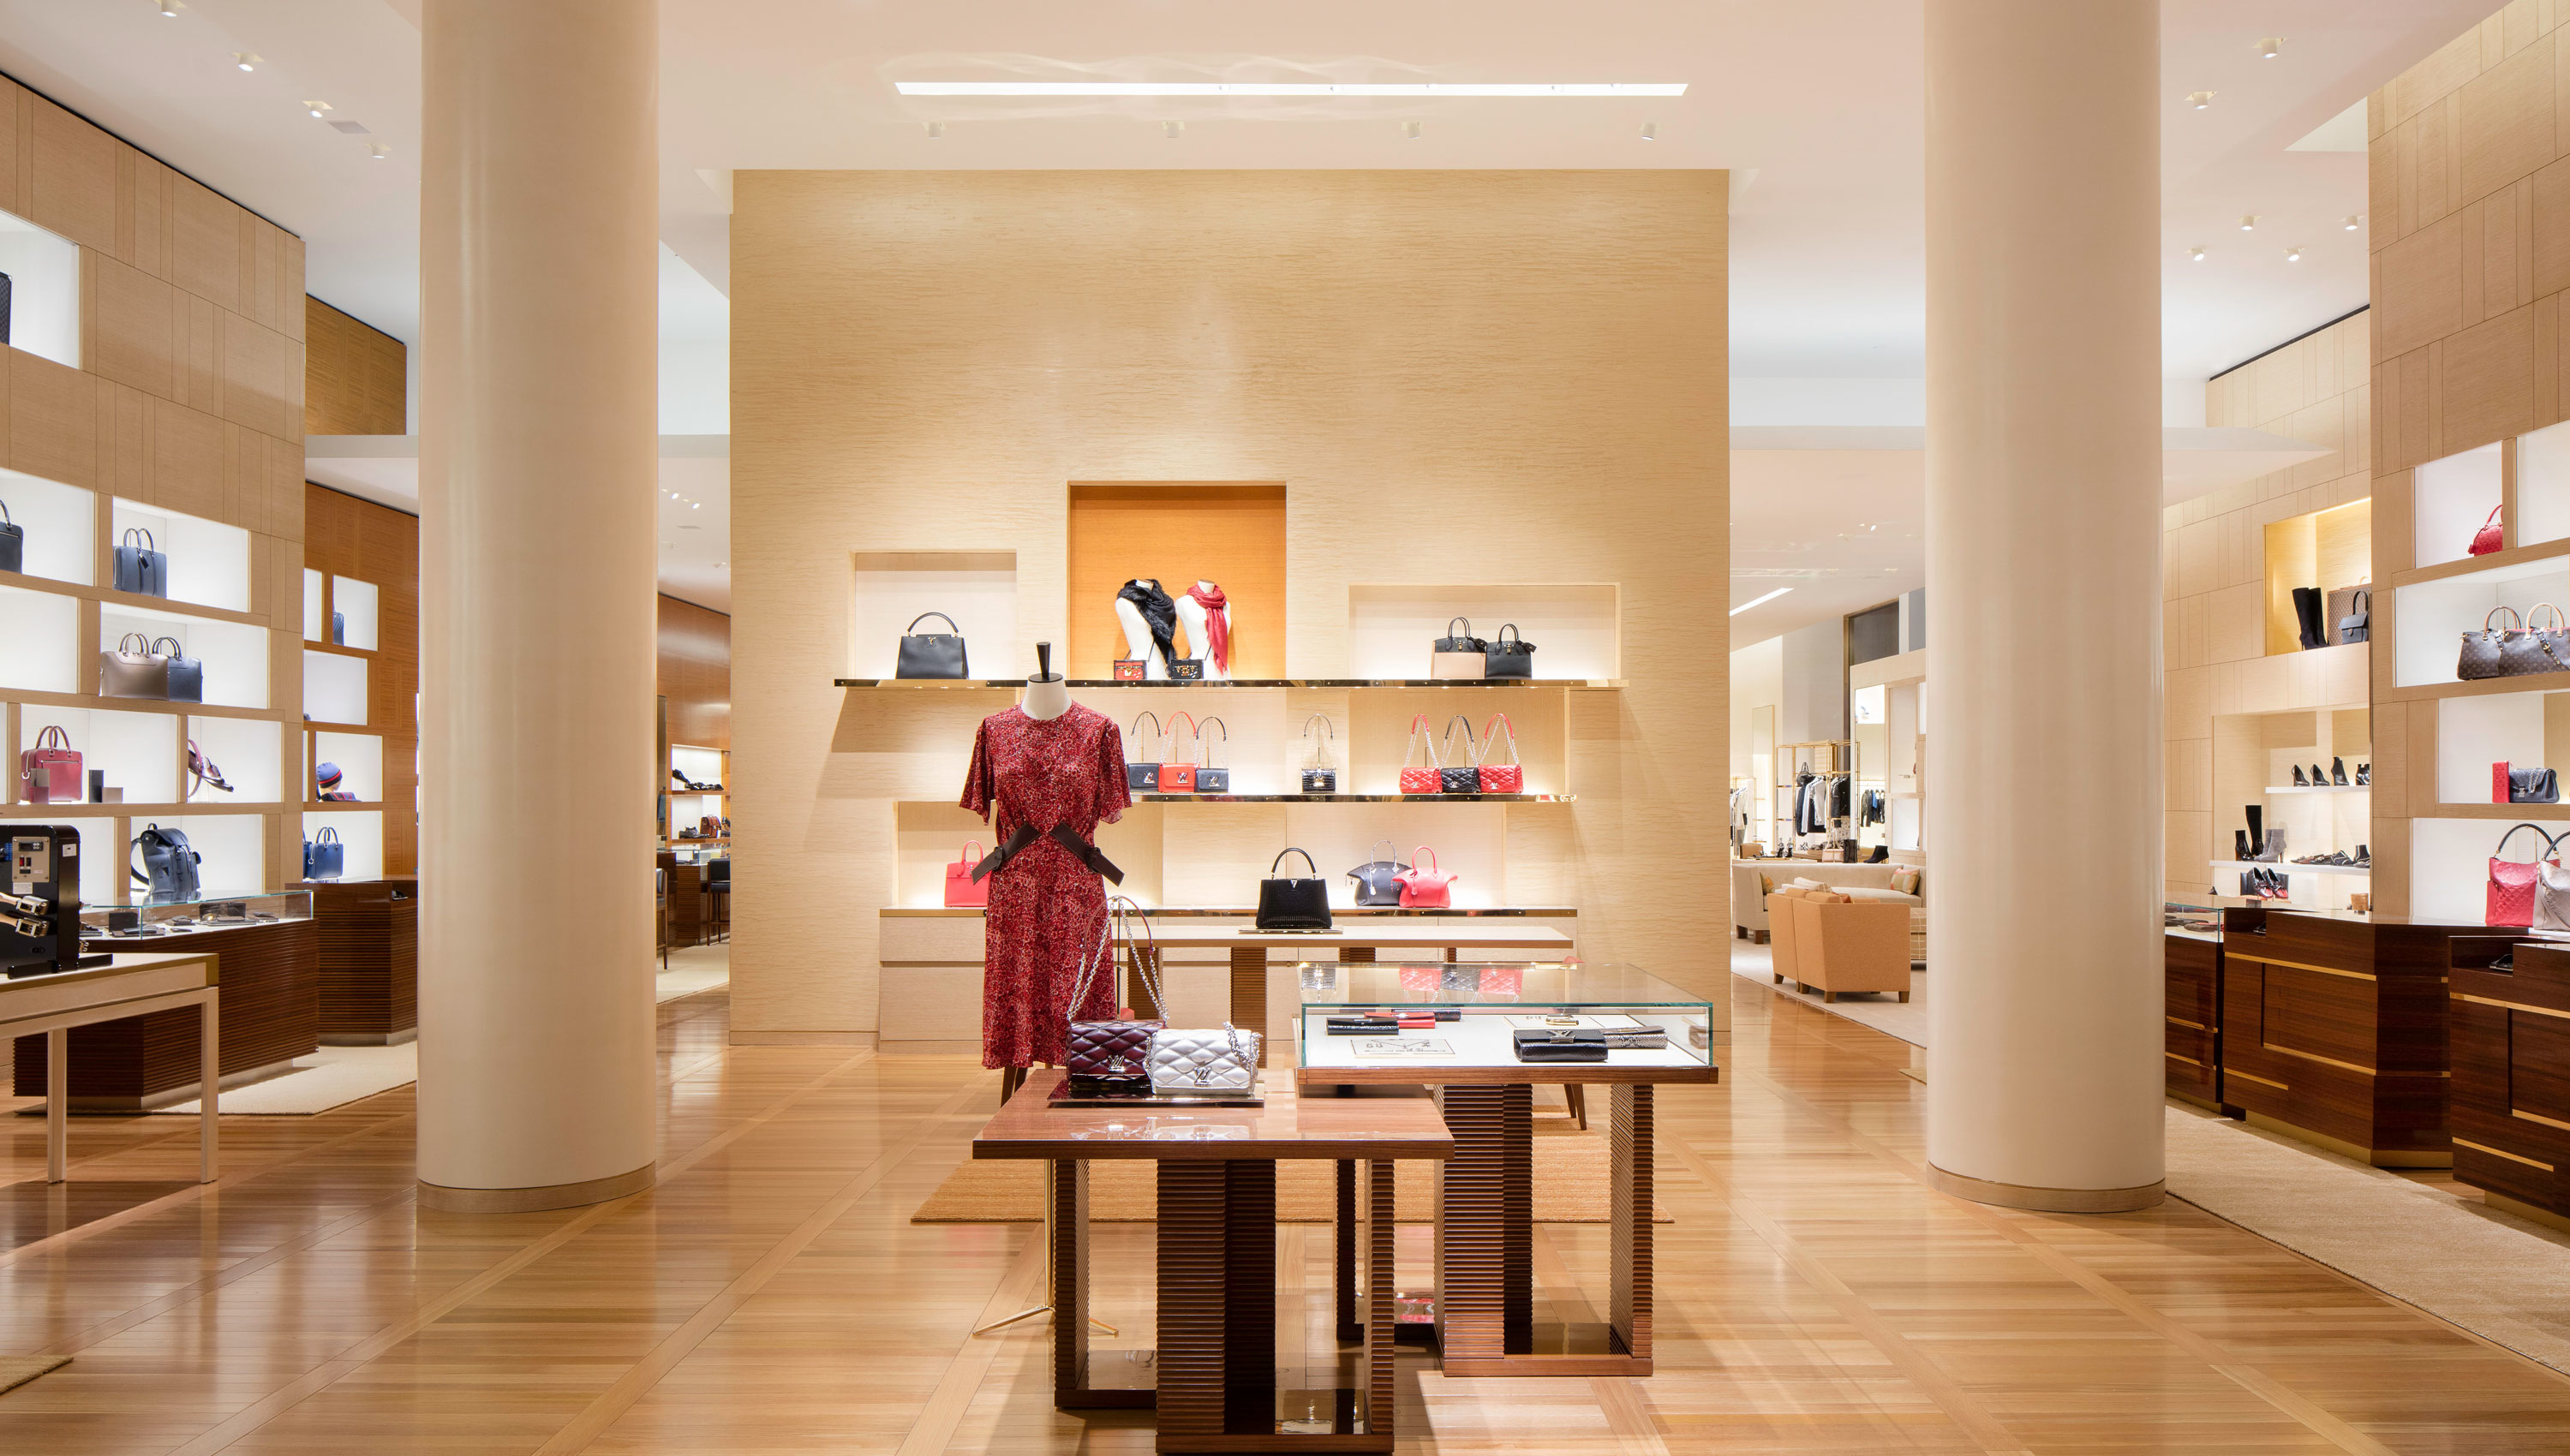 Louis Vuitton Manhasset image 1